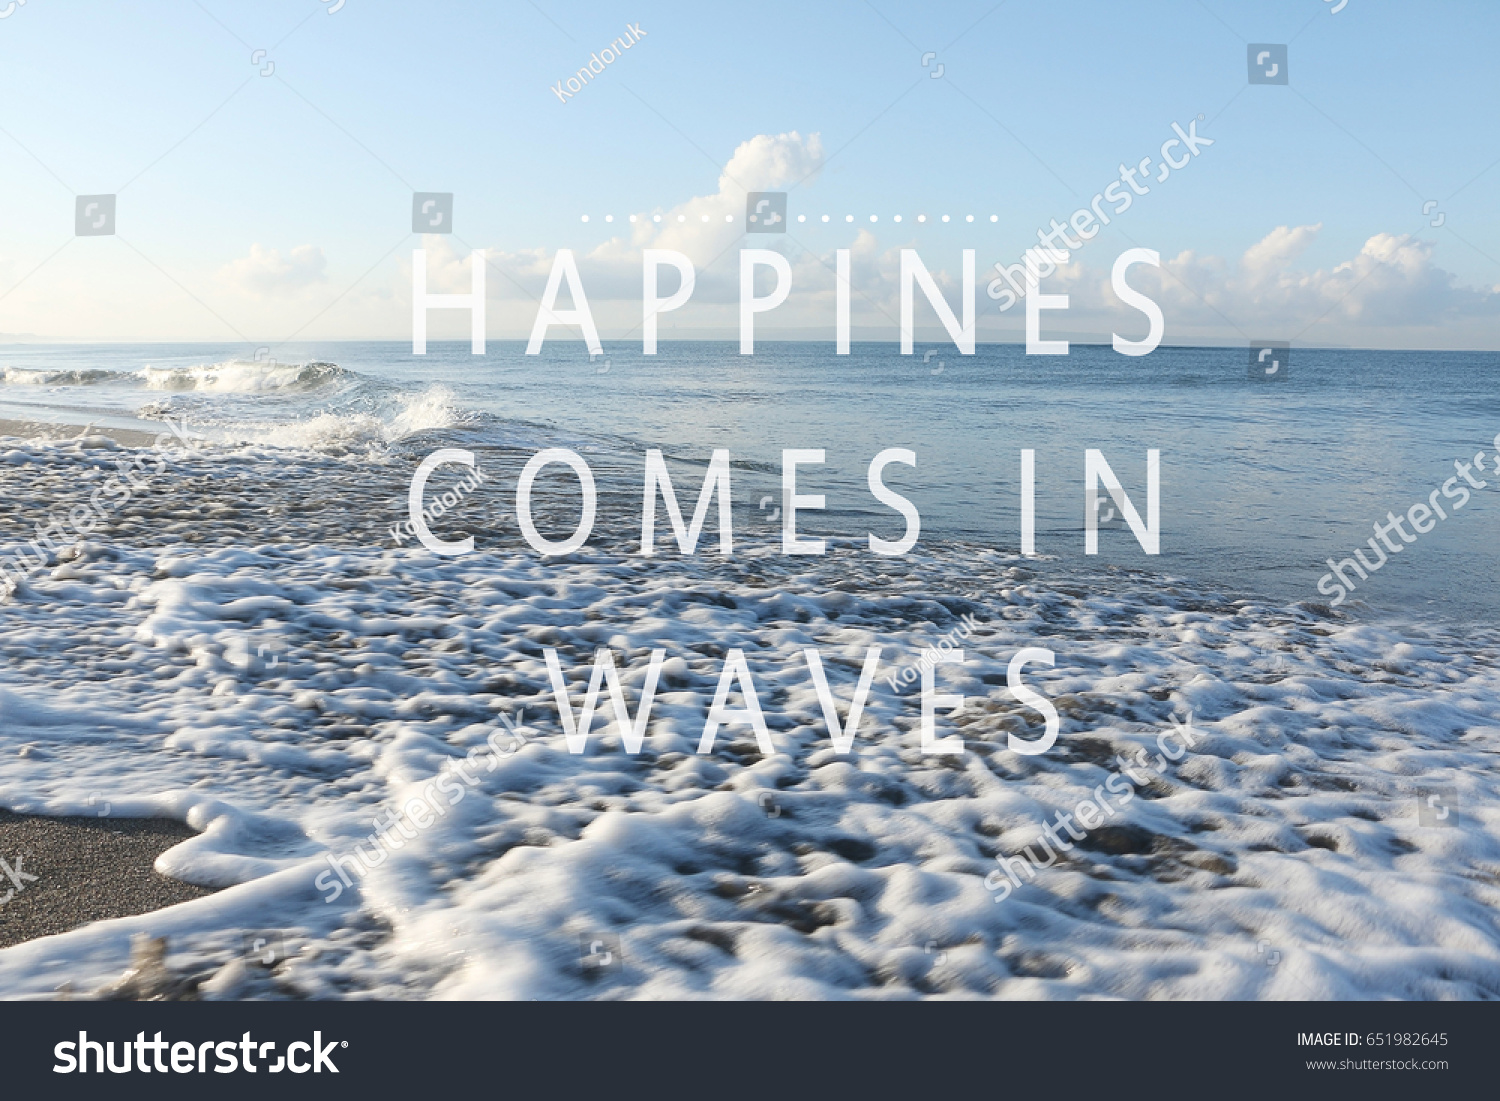 Blurry Waves On Beach Inspirational Quotes Stock Photo Edit Now